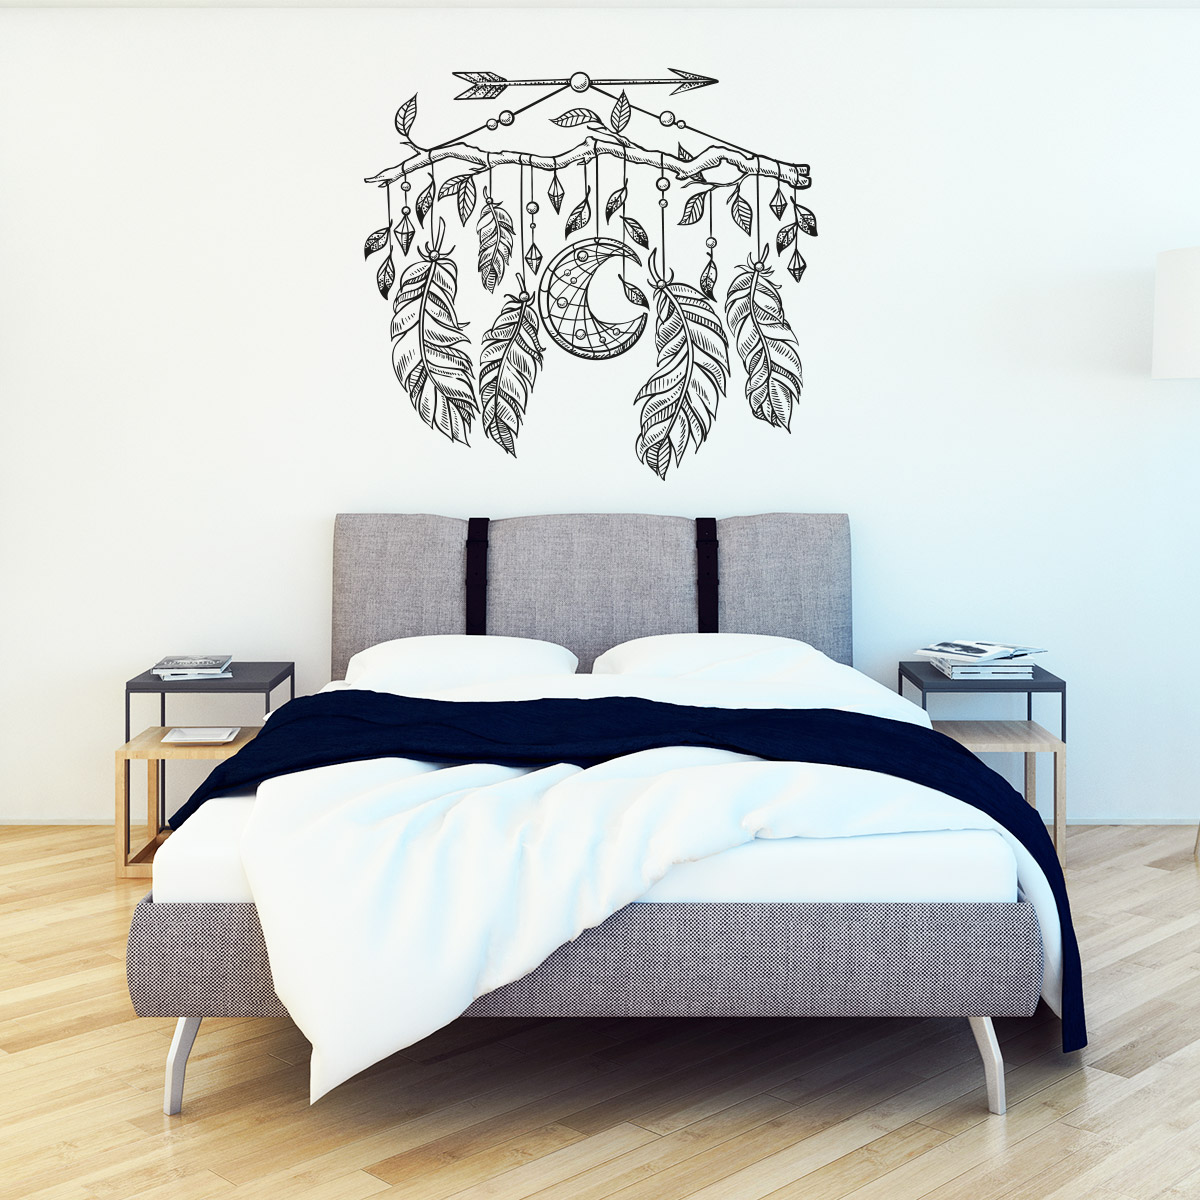 sticker boh me attrape r ves lune et plumes stickers chambre t tes de lit ambiance sticker. Black Bedroom Furniture Sets. Home Design Ideas